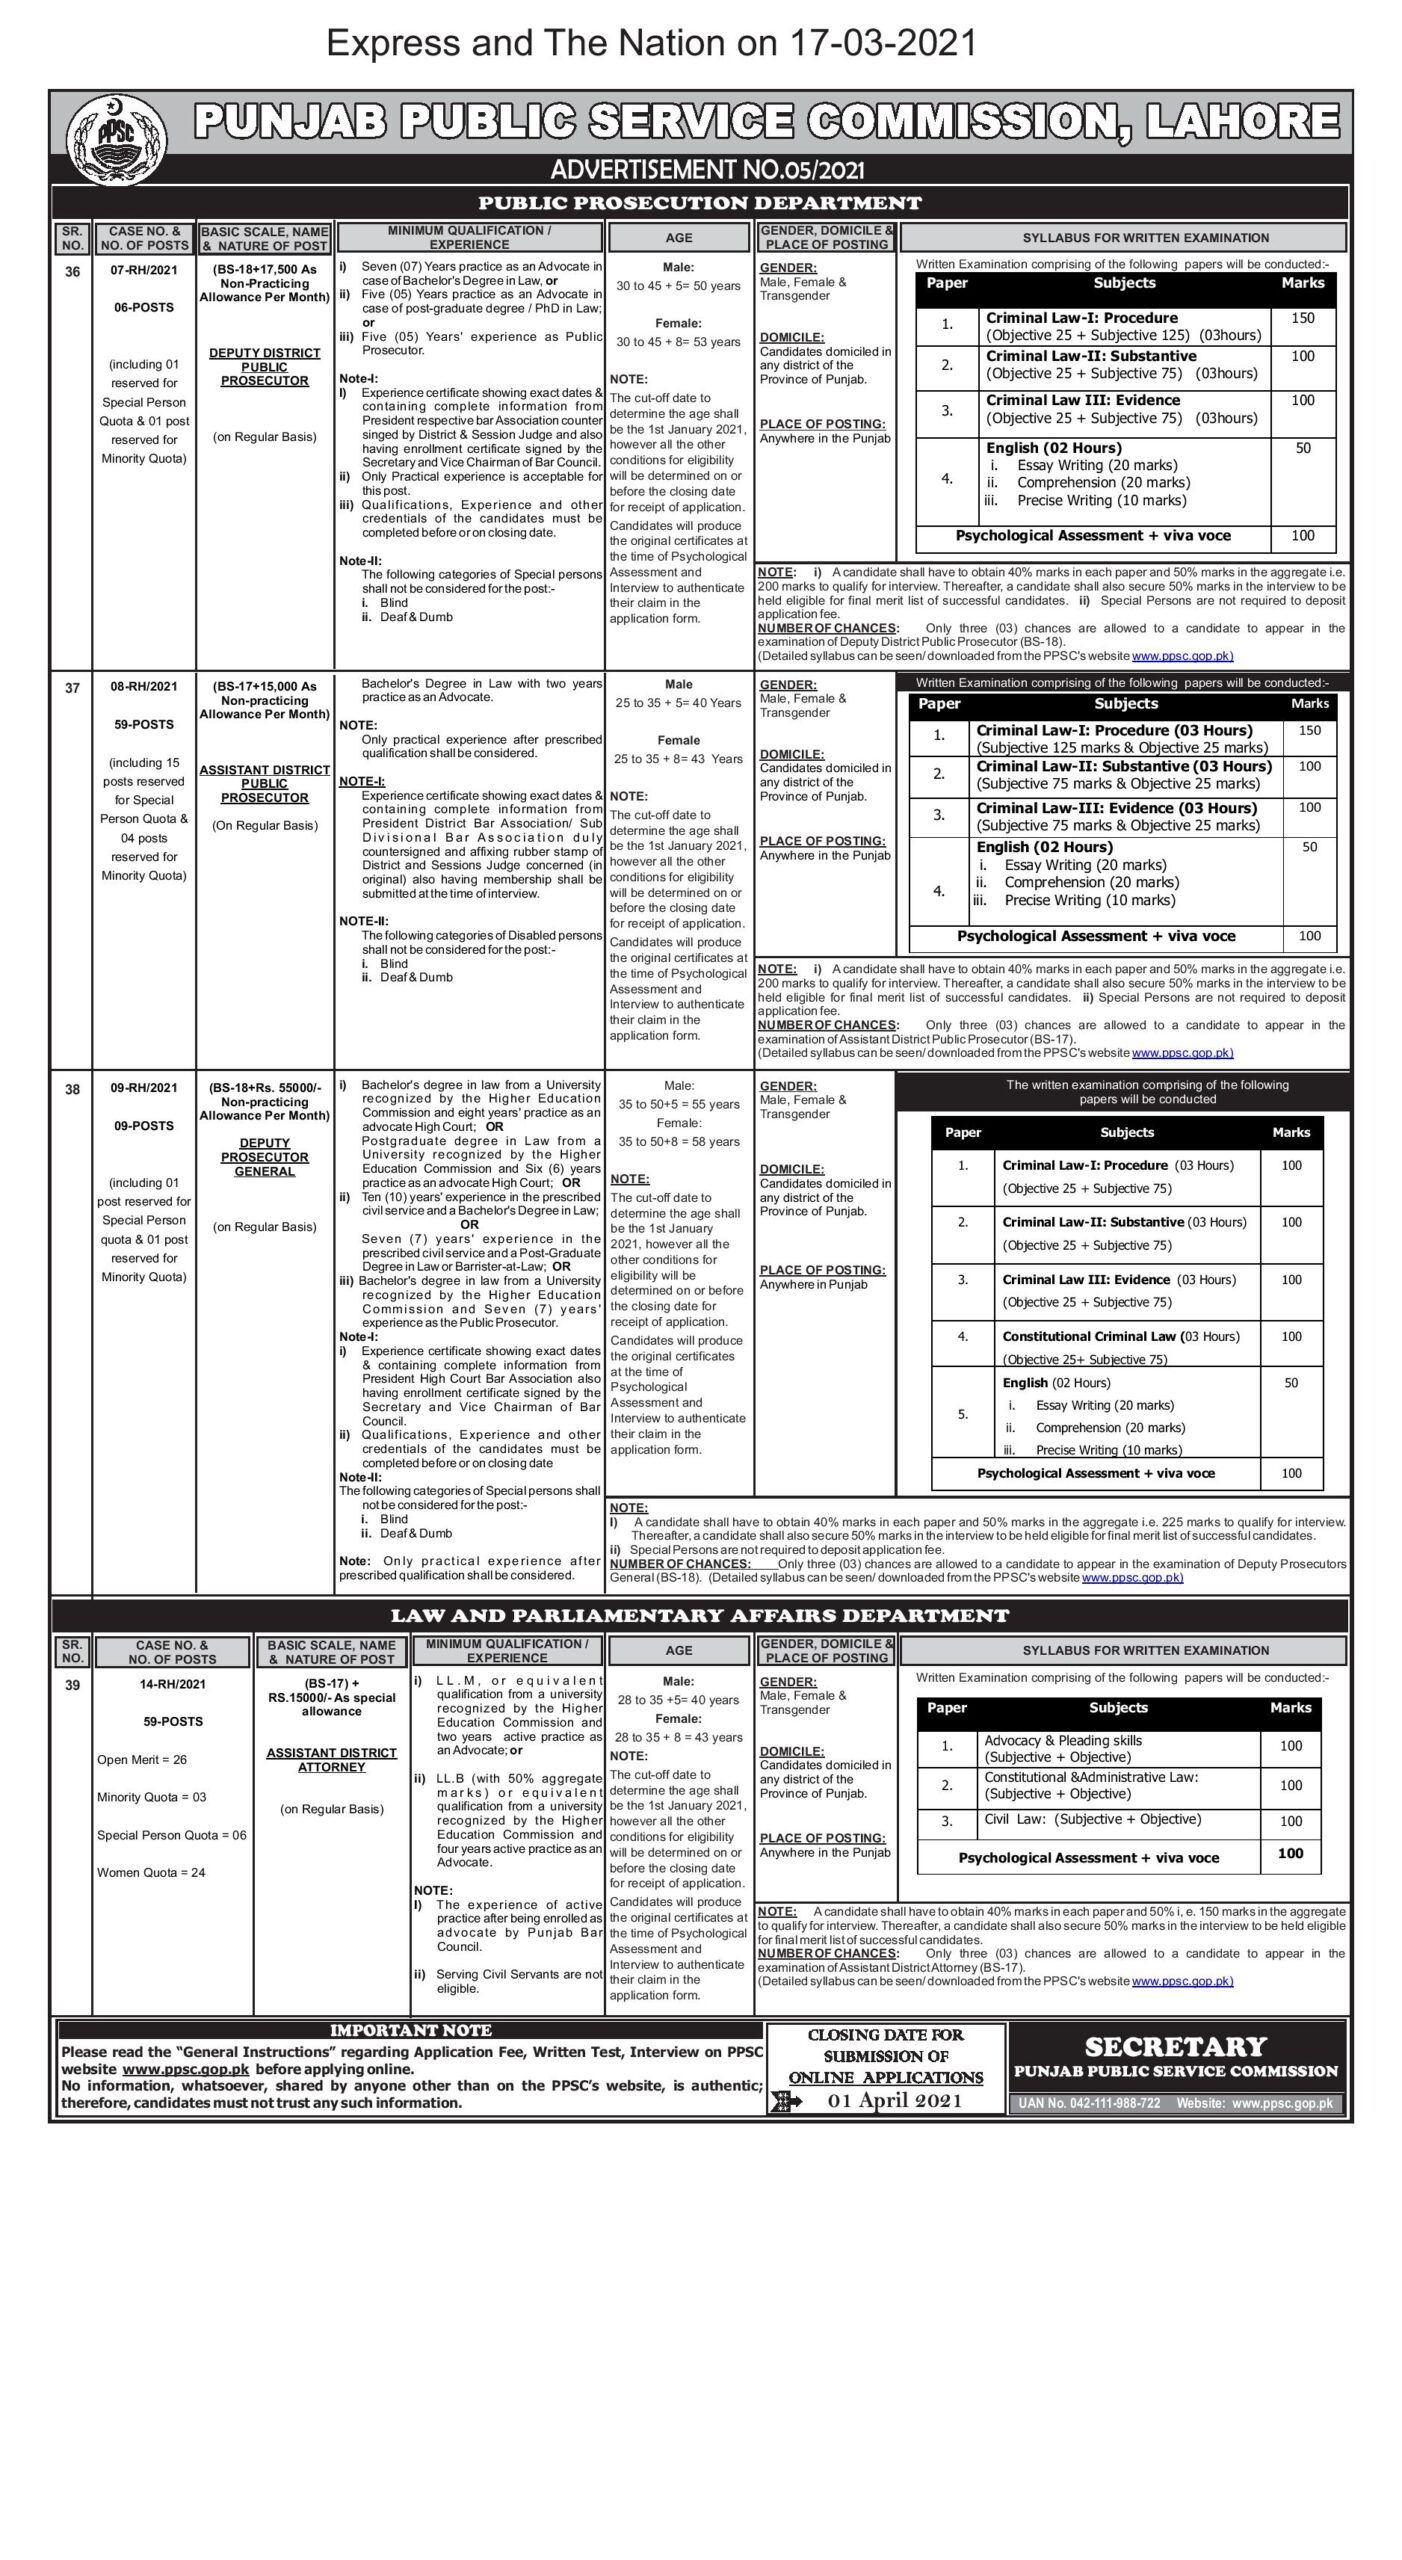 PPSC Jobs March 2021